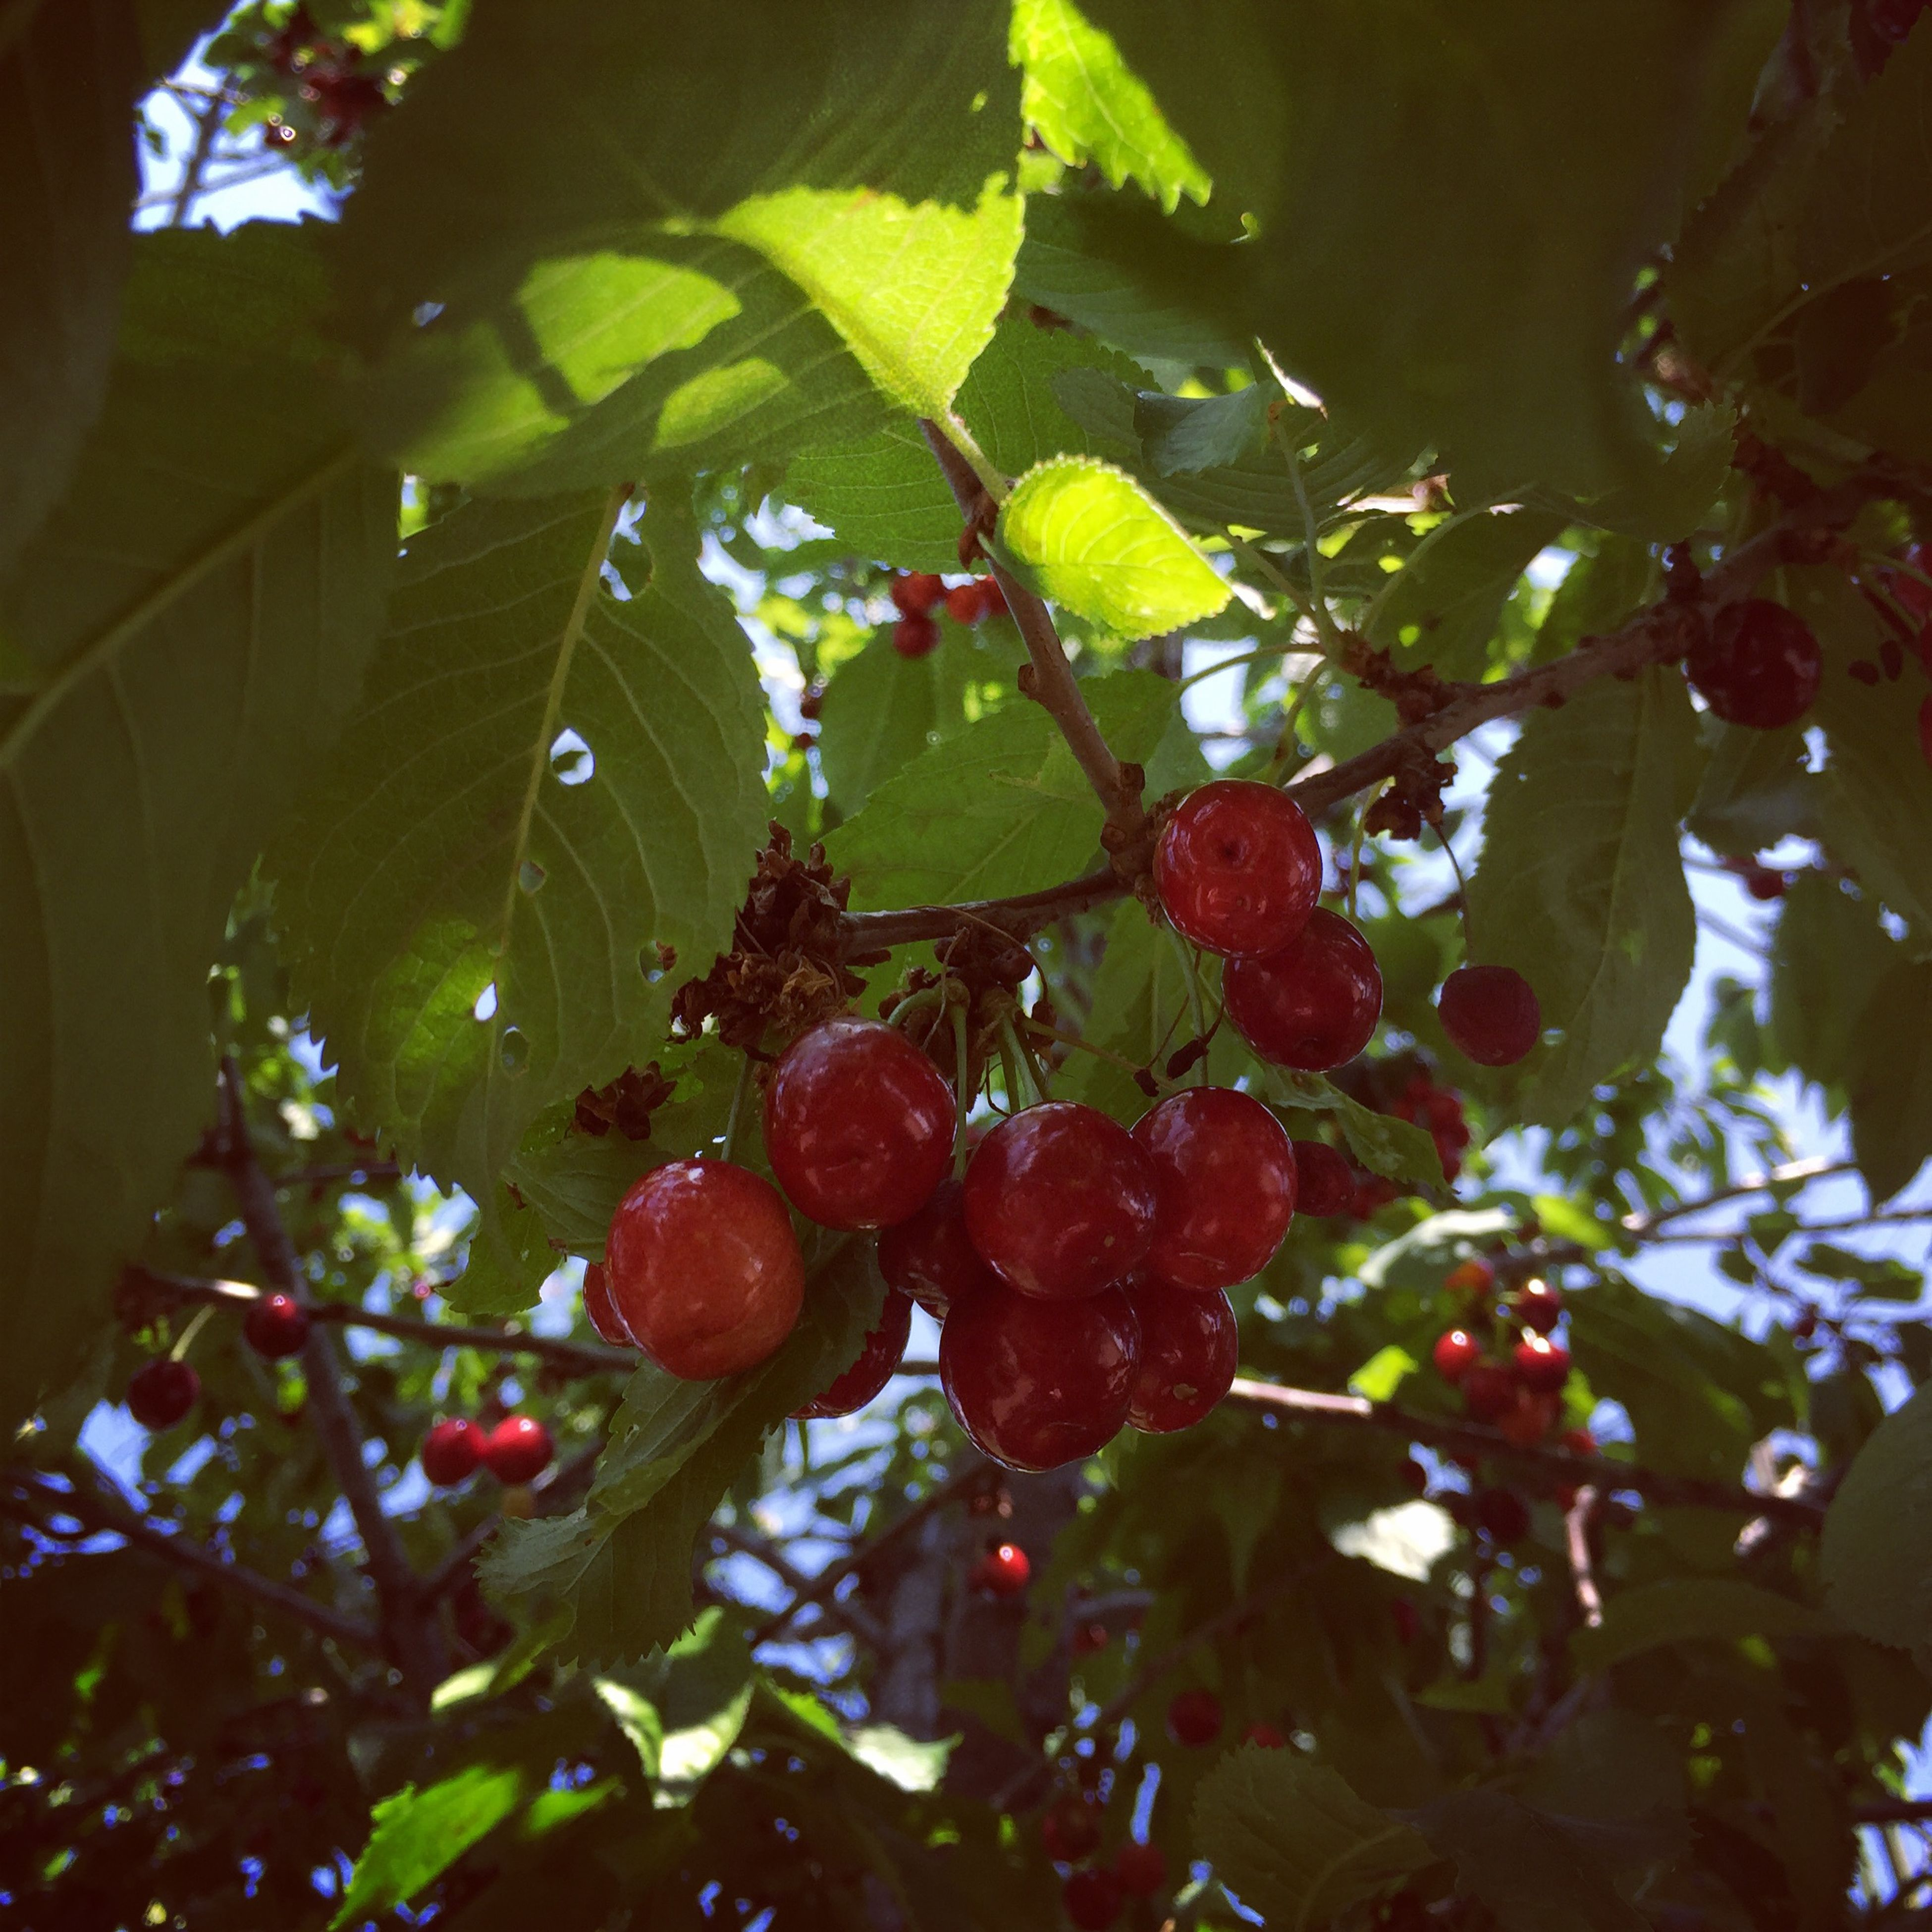 fruit, food and drink, branch, leaf, tree, food, growth, freshness, healthy eating, low angle view, berry fruit, hanging, close-up, ripe, nature, berry, green color, red, focus on foreground, day